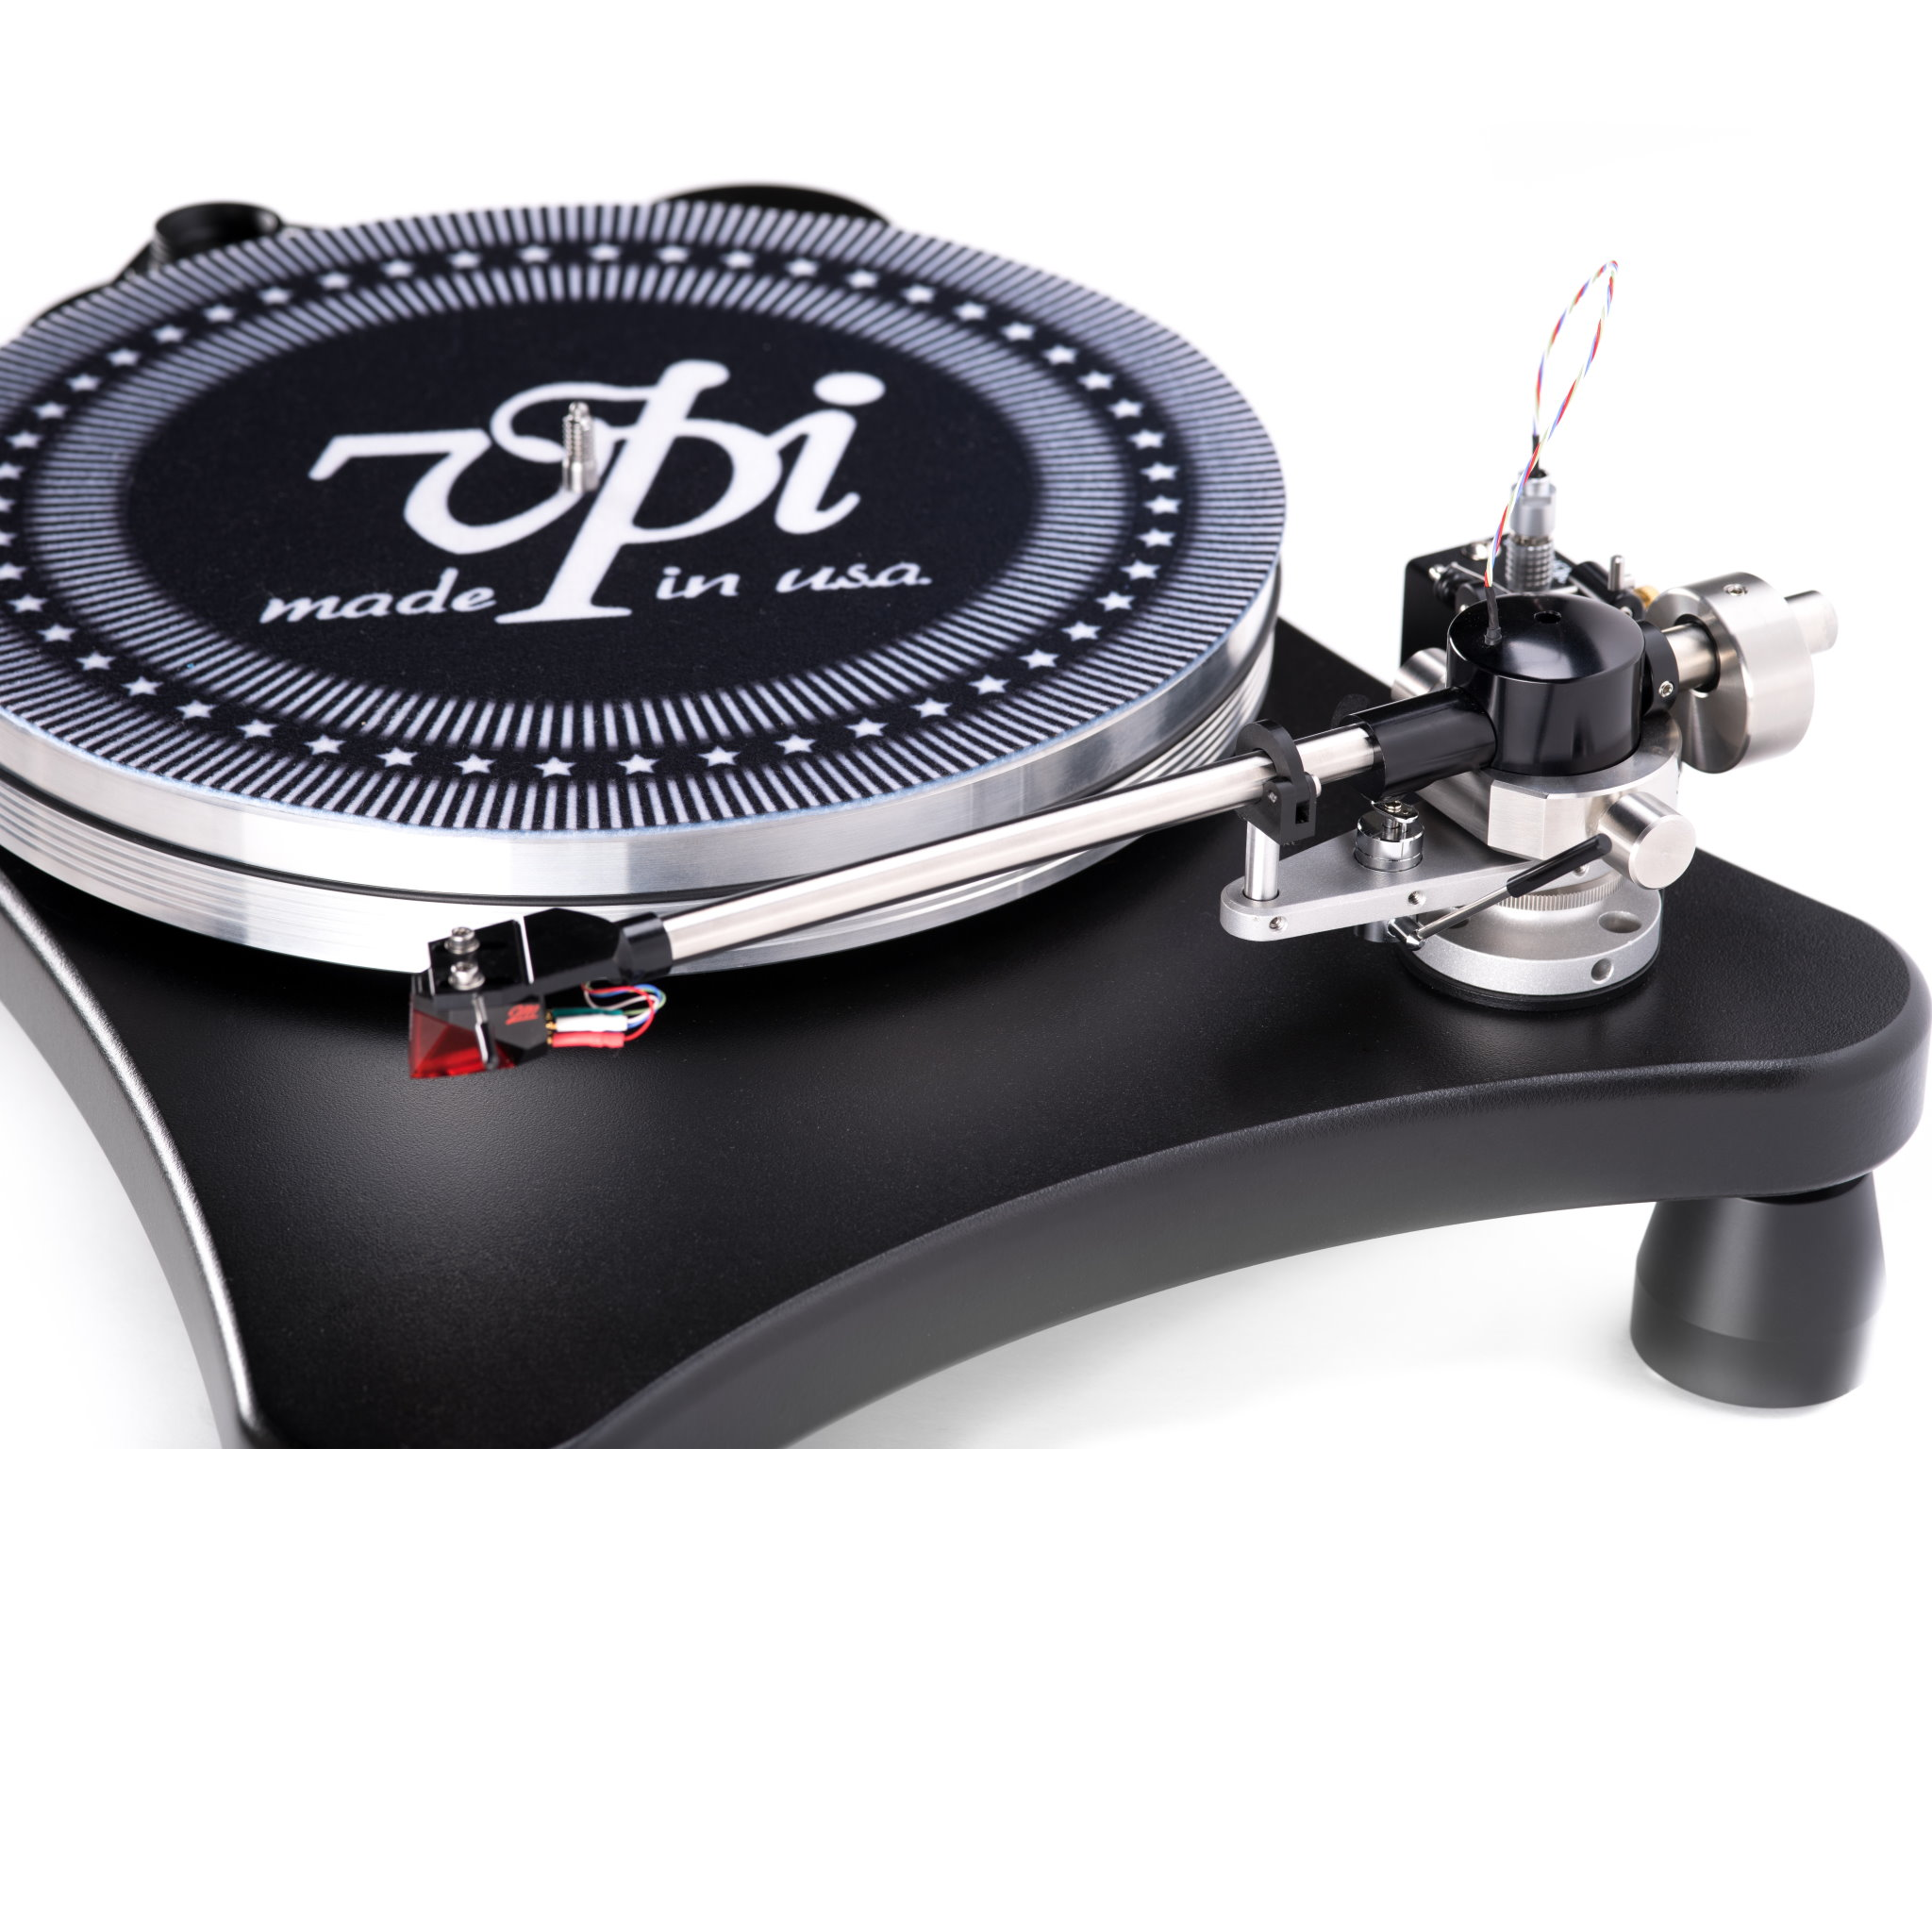 VPI Scout 2017 Turntable